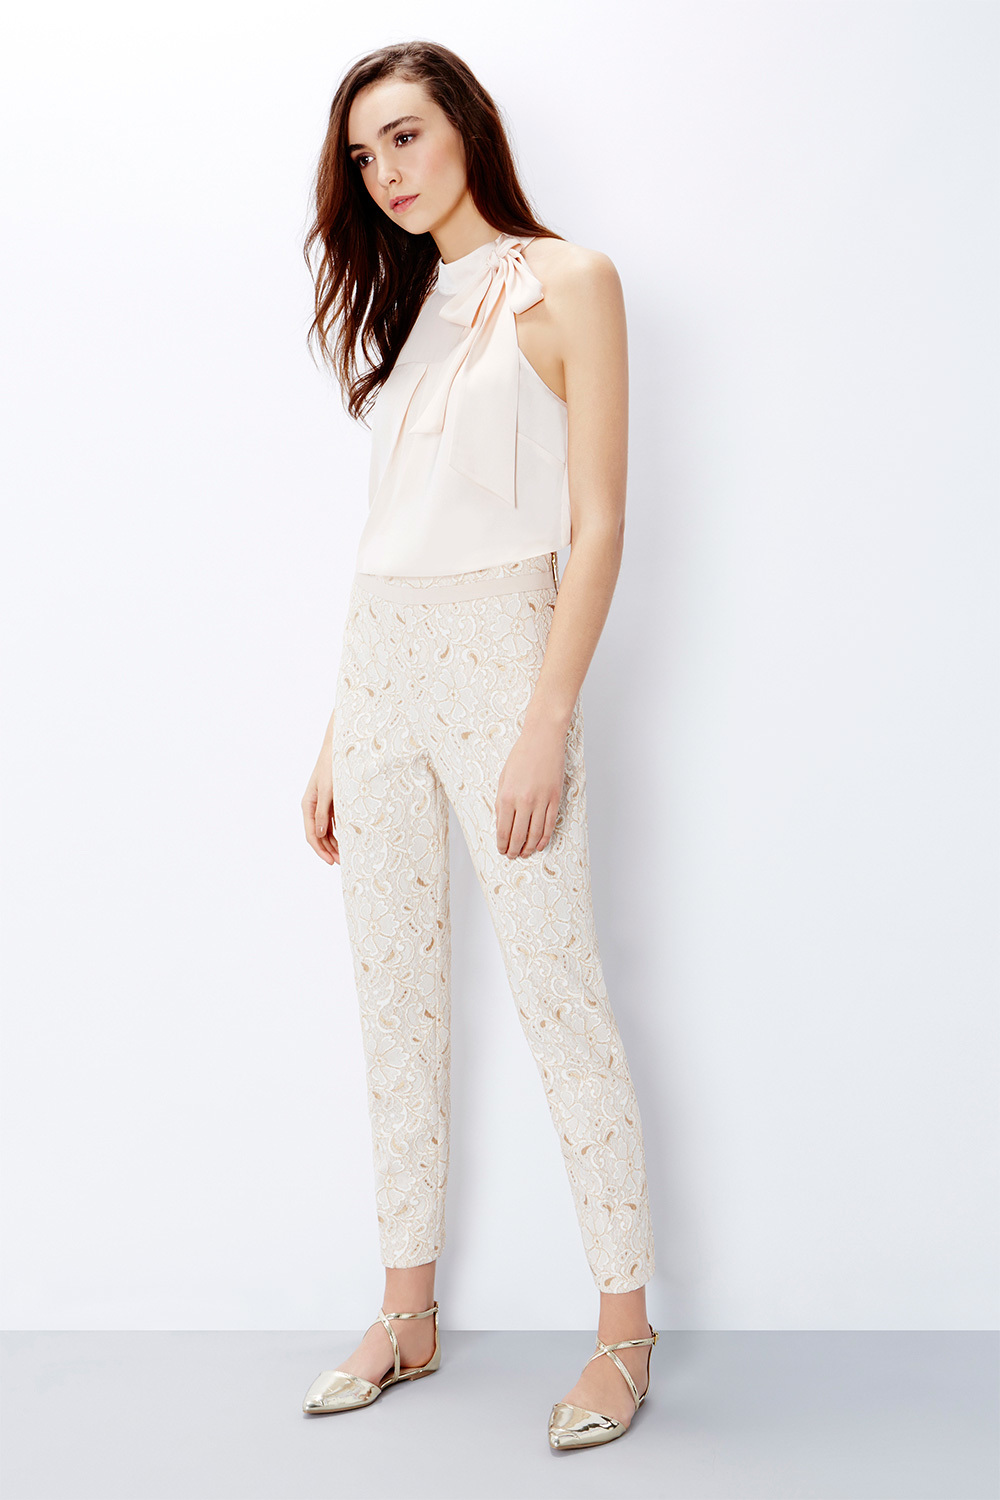 Levitt Lace Trousers - waist: high rise; predominant colour: ivory/cream; length: ankle length; fibres: nylon - mix; fit: slim leg; pattern type: fabric; pattern: patterned/print; texture group: other - light to midweight; style: standard; embellishment: lace; occasions: creative work; season: s/s 2016; wardrobe: highlight